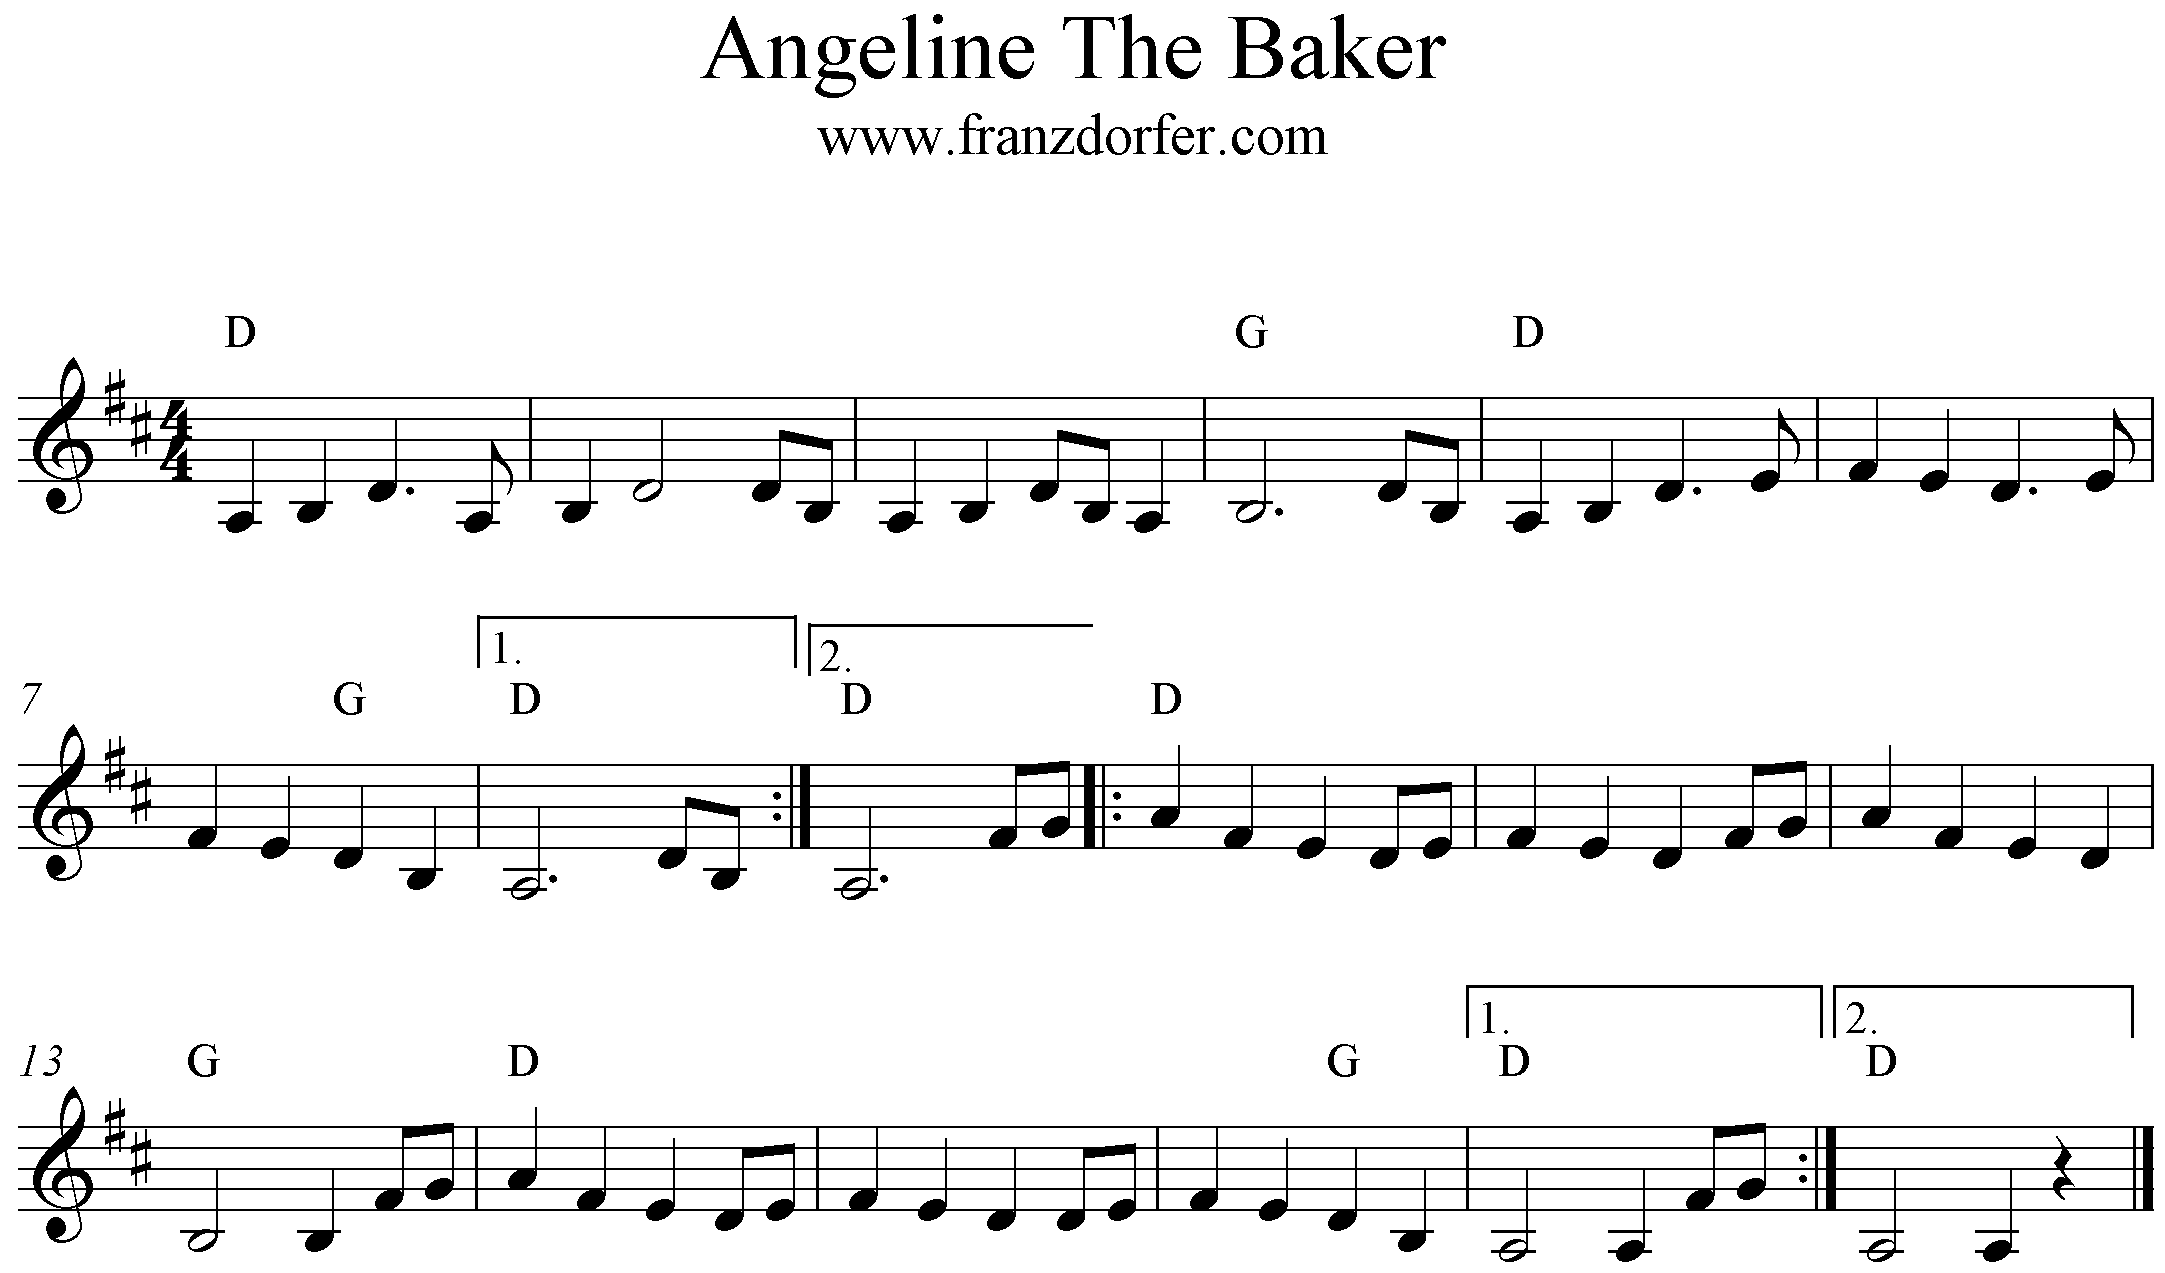 D-Major, Angeline The Baker